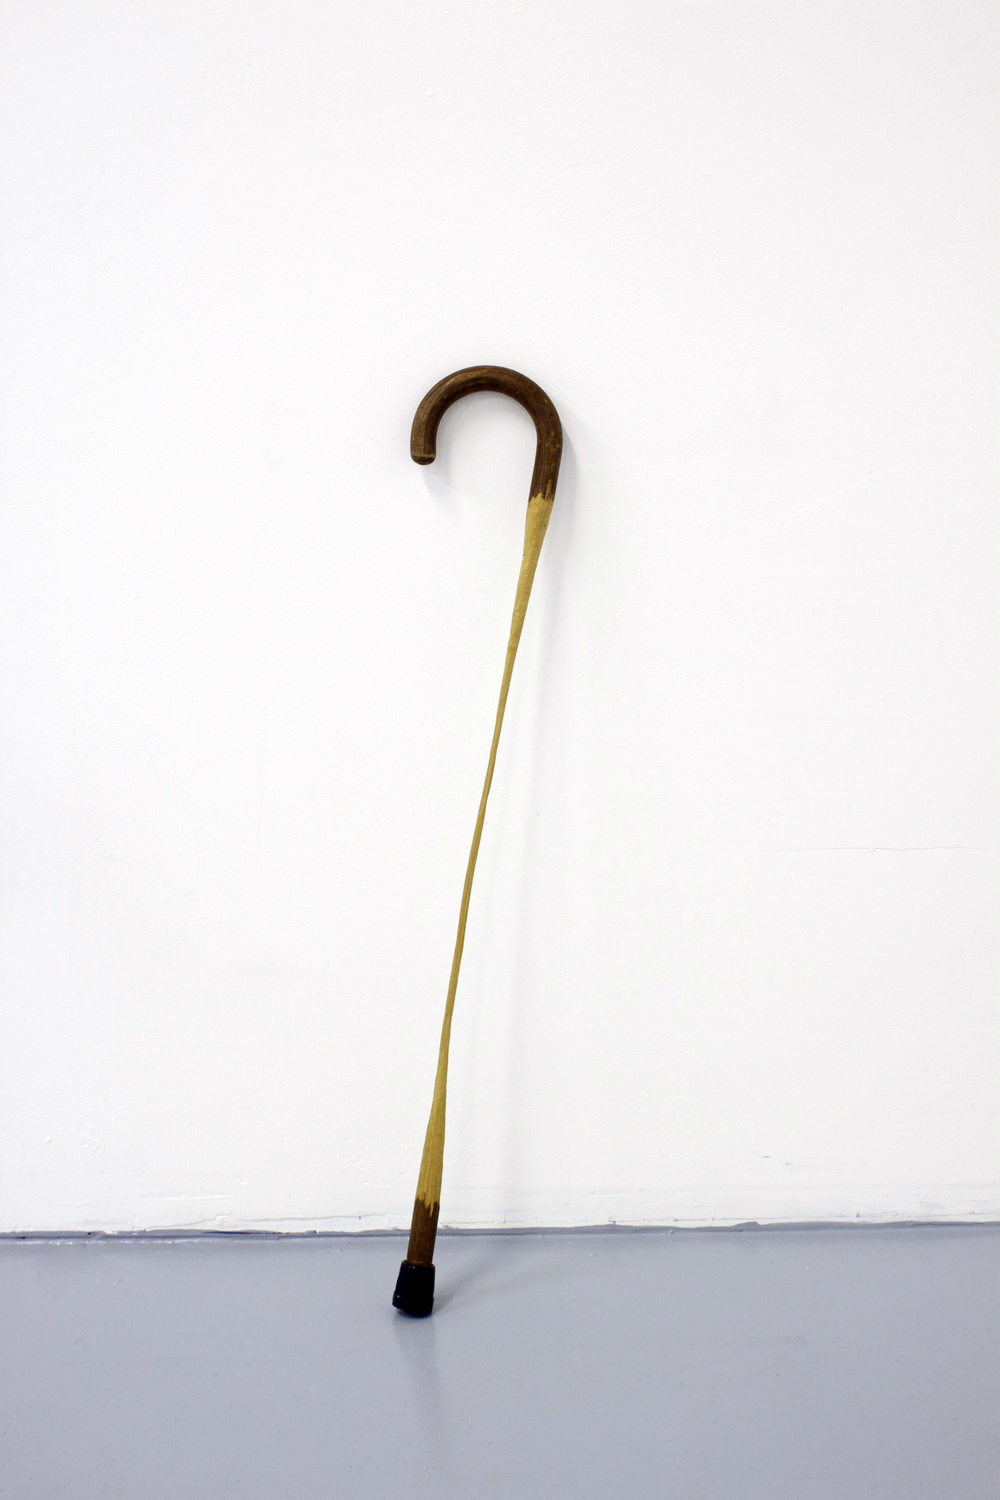 Untitled (Whittled Cane)